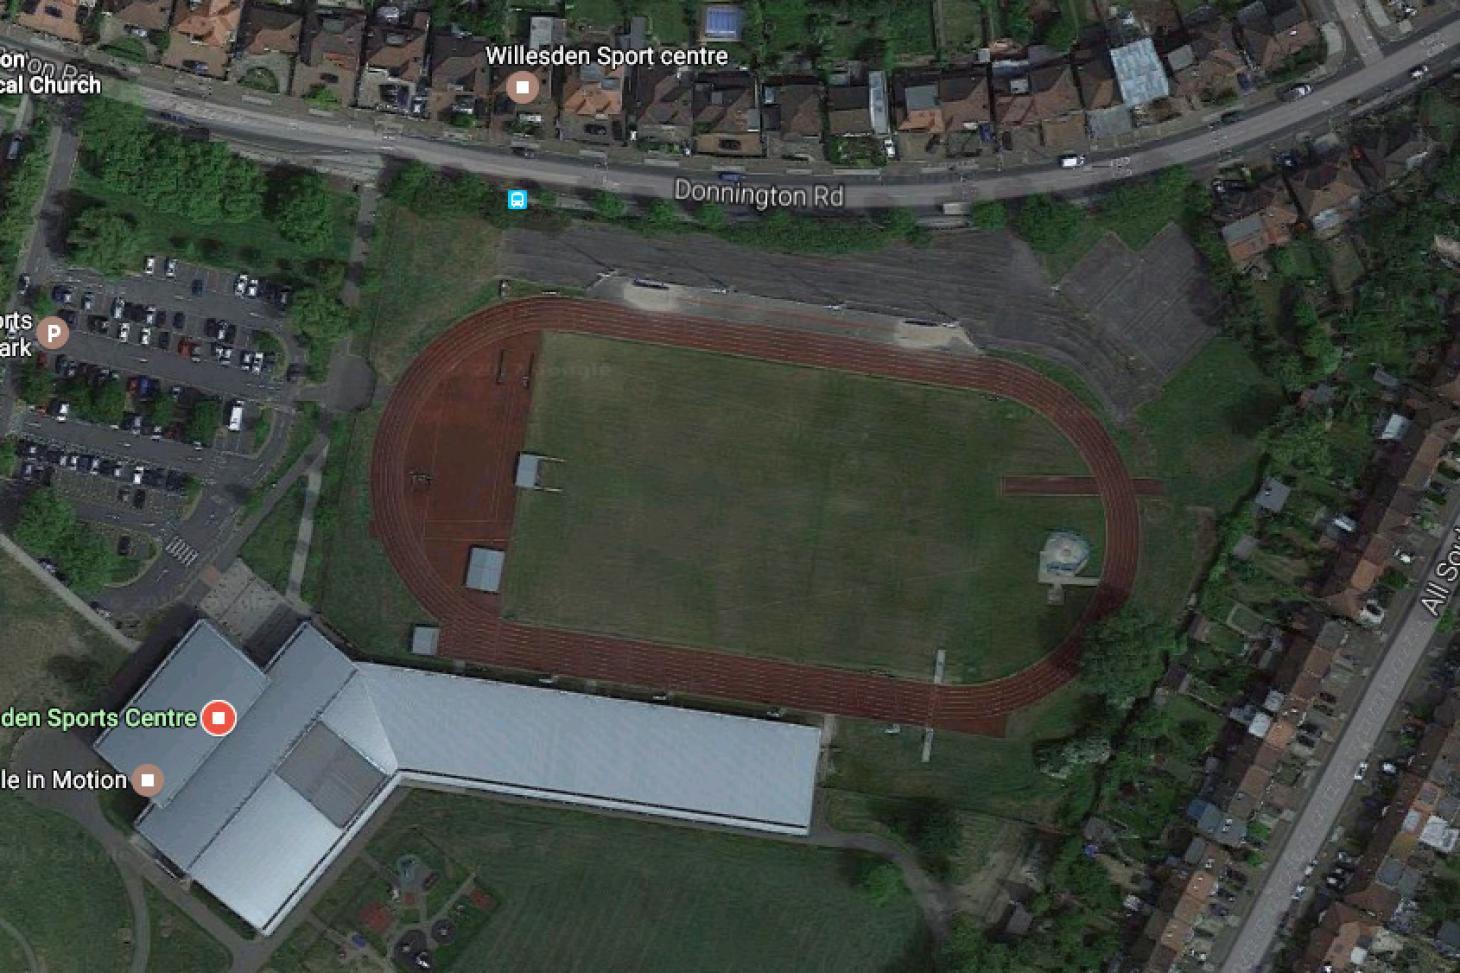 Willesden Sports Centre Outdoor | Synthetic rubber athletics track